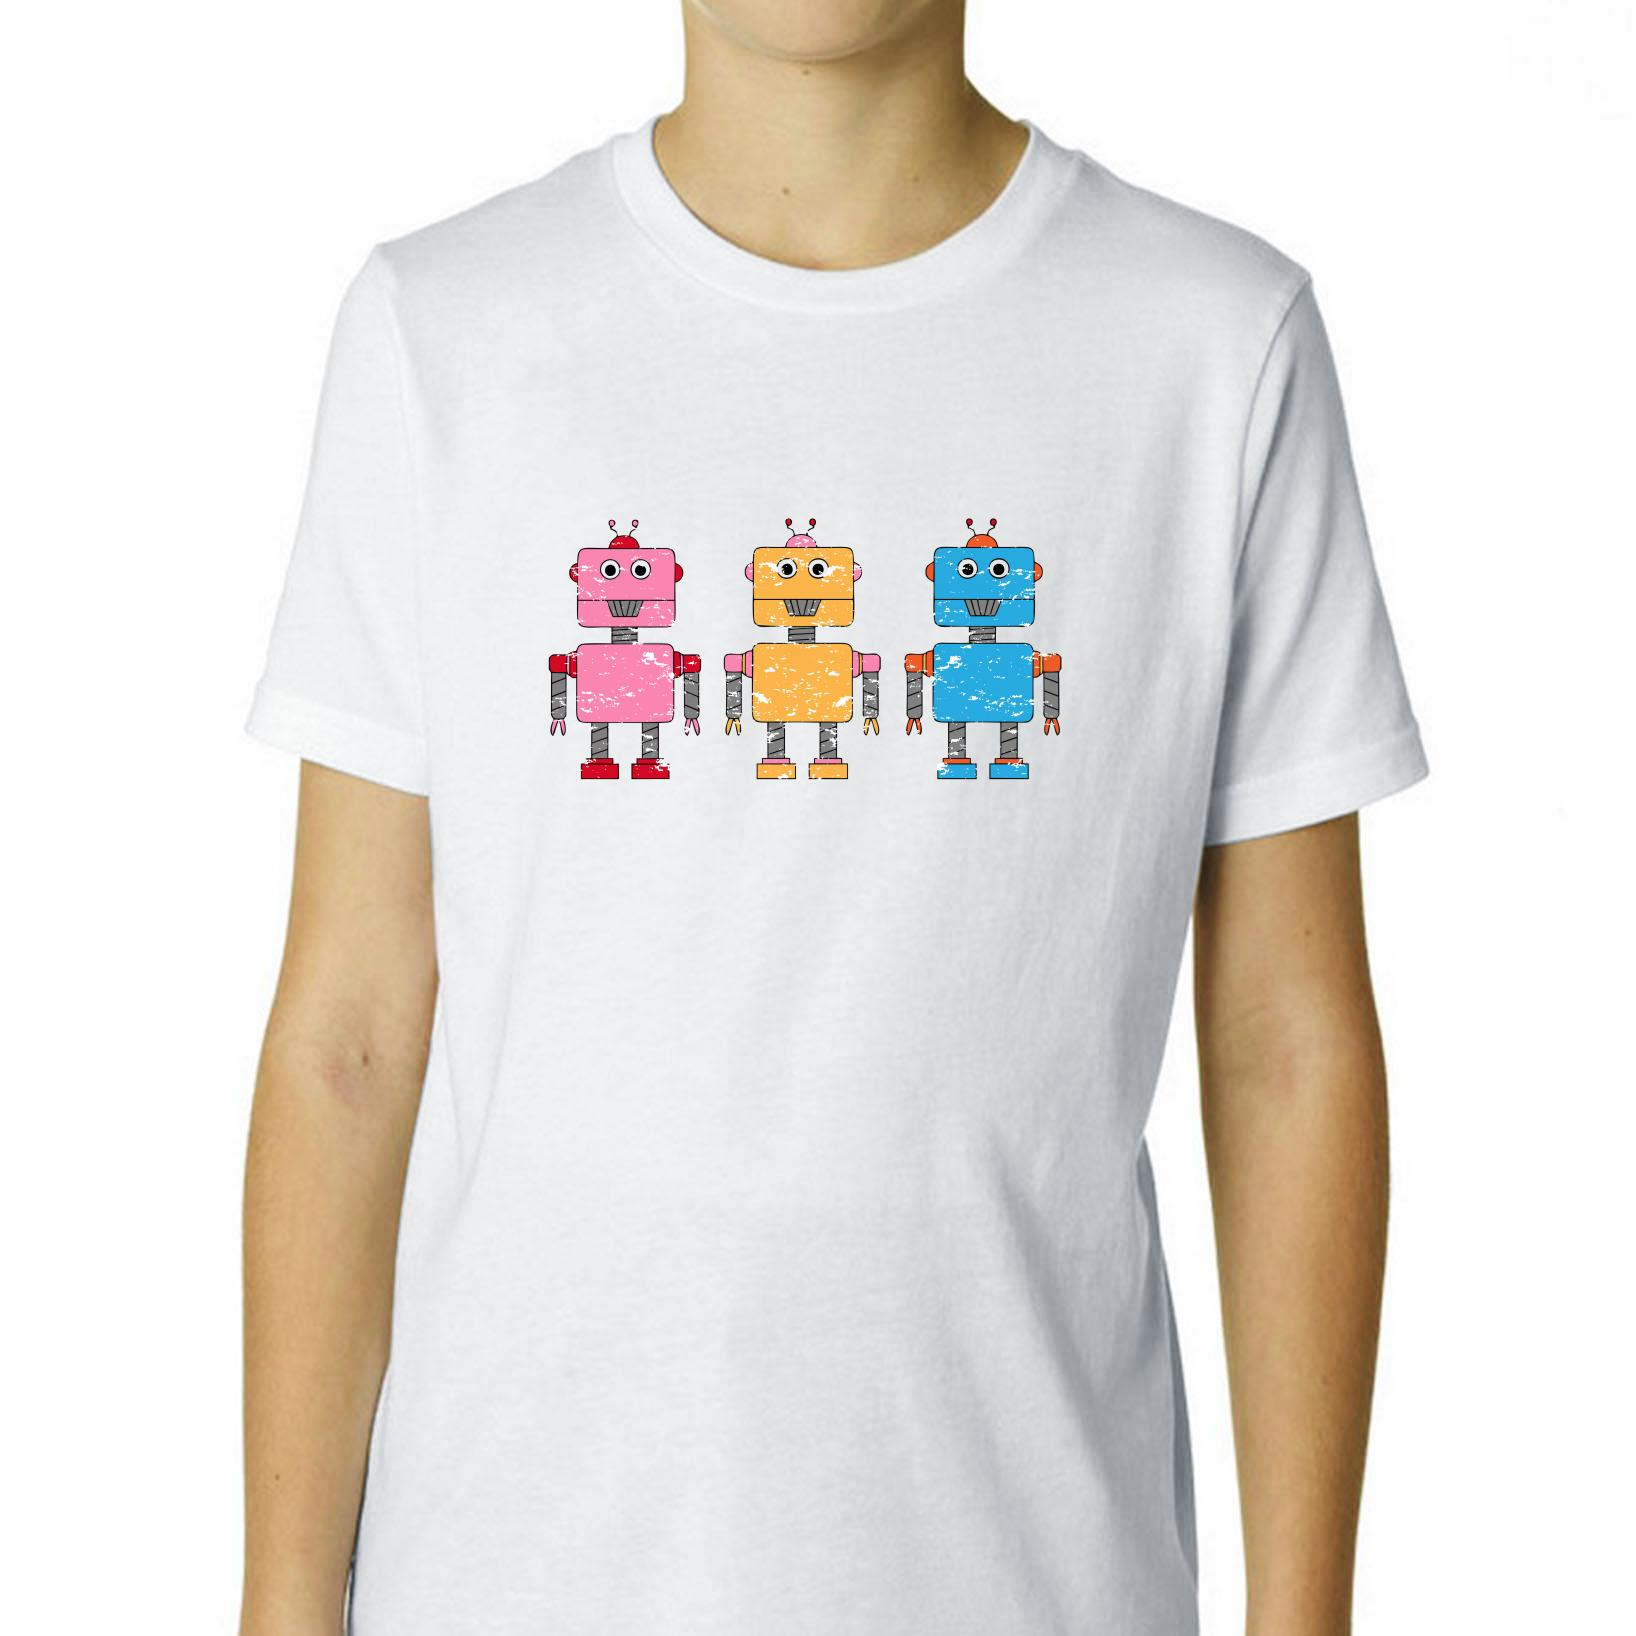 Cartoon Robots - Three Cute Colorful Boy's Cotton Youth T-Shirt